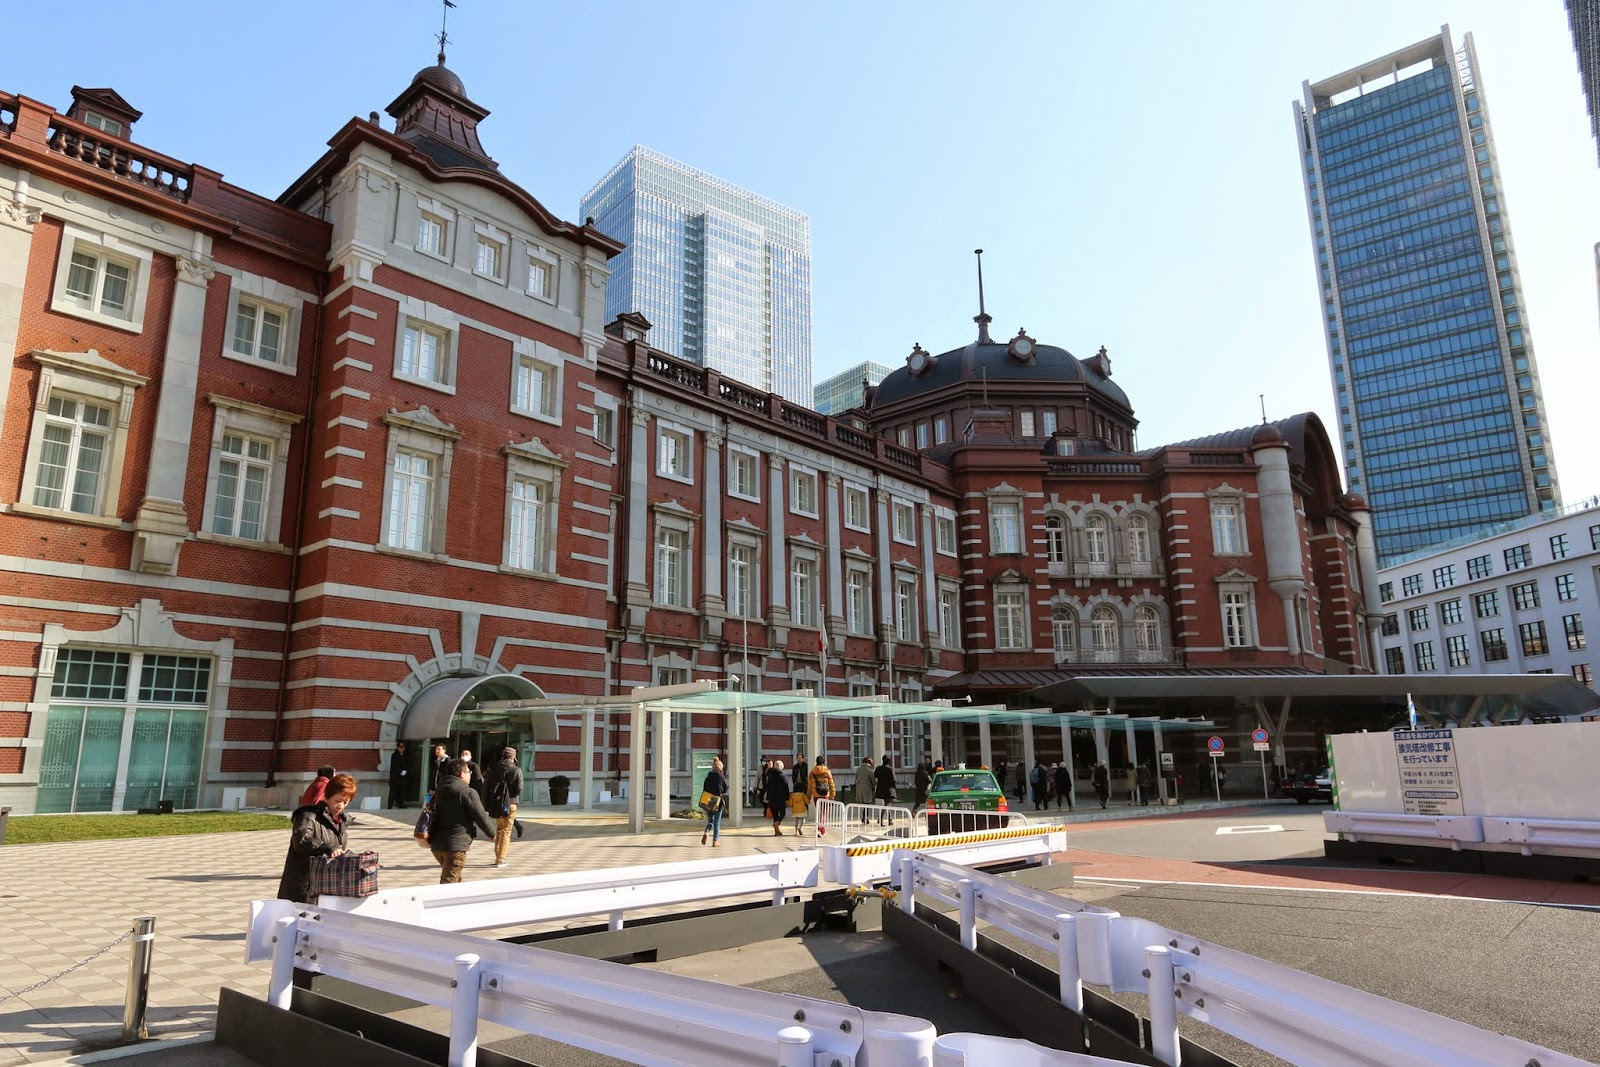 Walking to the other end of Tokyo Station which is quieter than the main operation side of Tokyo Station with trains coming from Tokyo Metro and JR lines in Japan